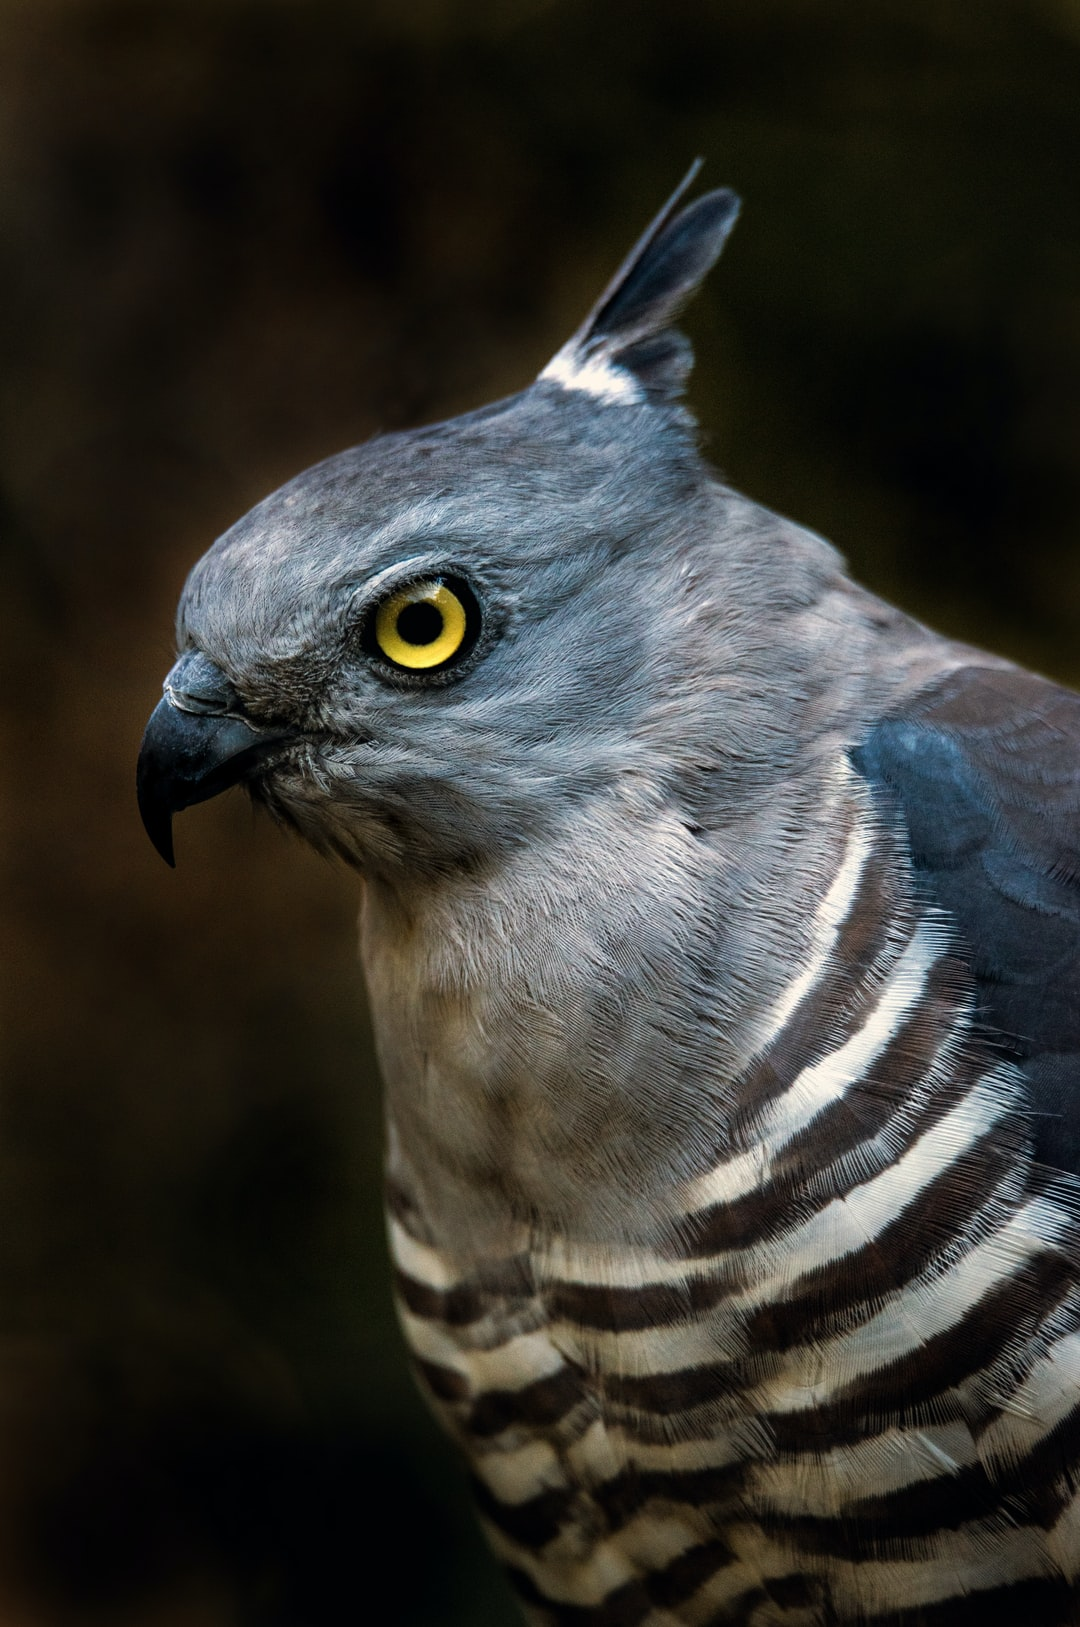 A Crested Hawk eyes off the photographer. Also known as a Pacific Baza. Photographed at Hartleys Crocodile adventures North of Cairns, Queensland, Australia,